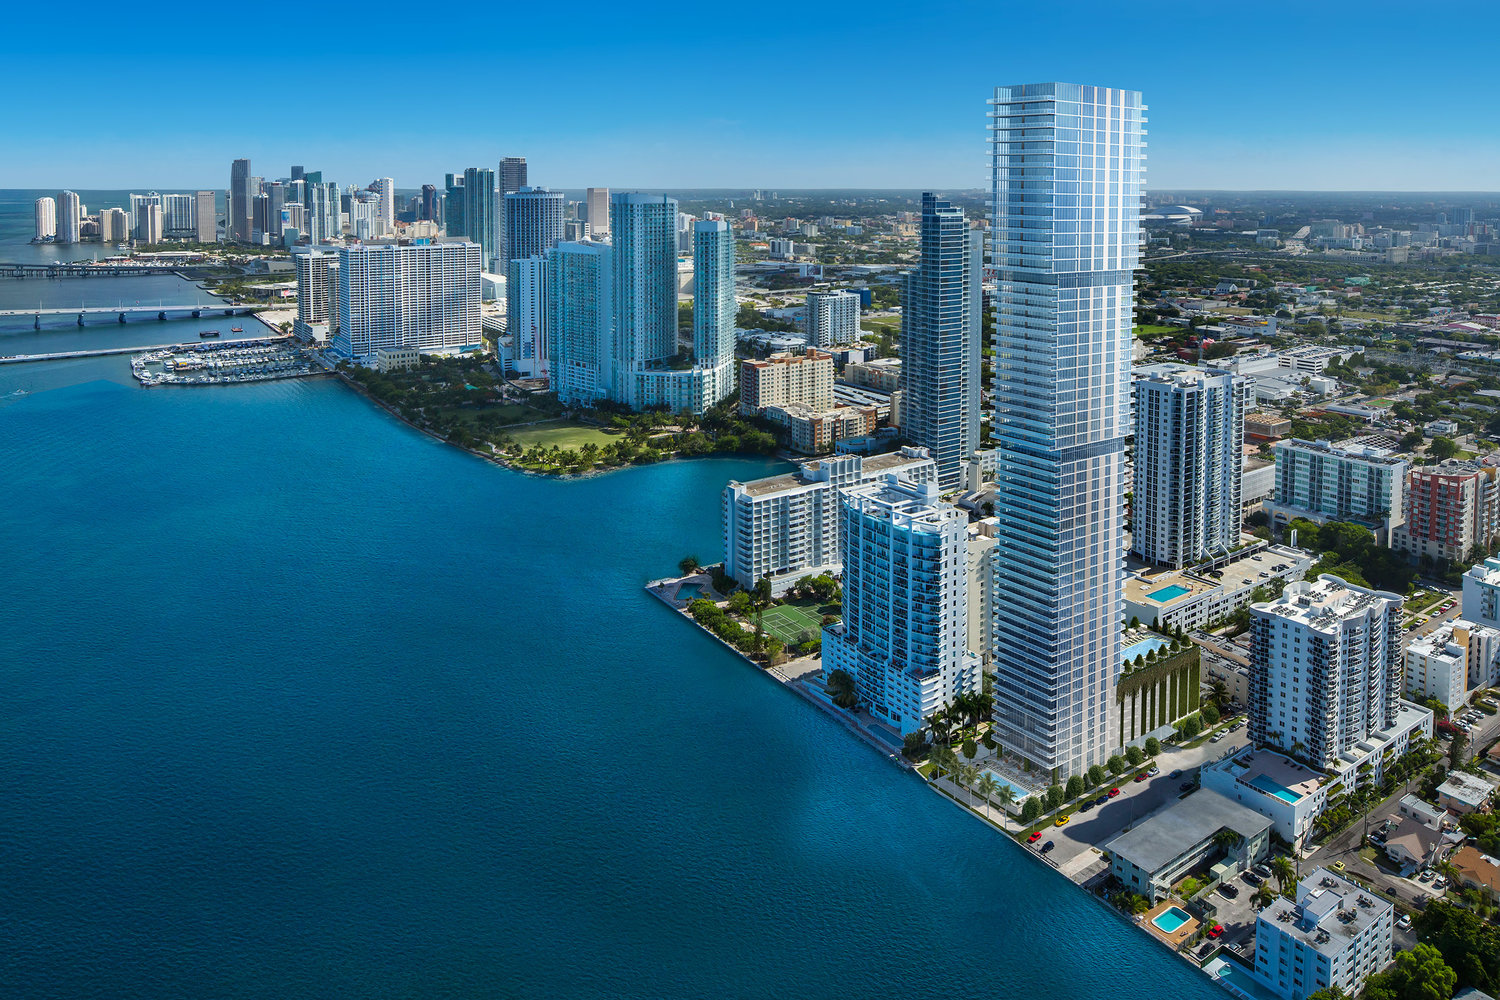 Two Roads Development Locks Down $138 Million Construction Loan For Elysee In Edgewater